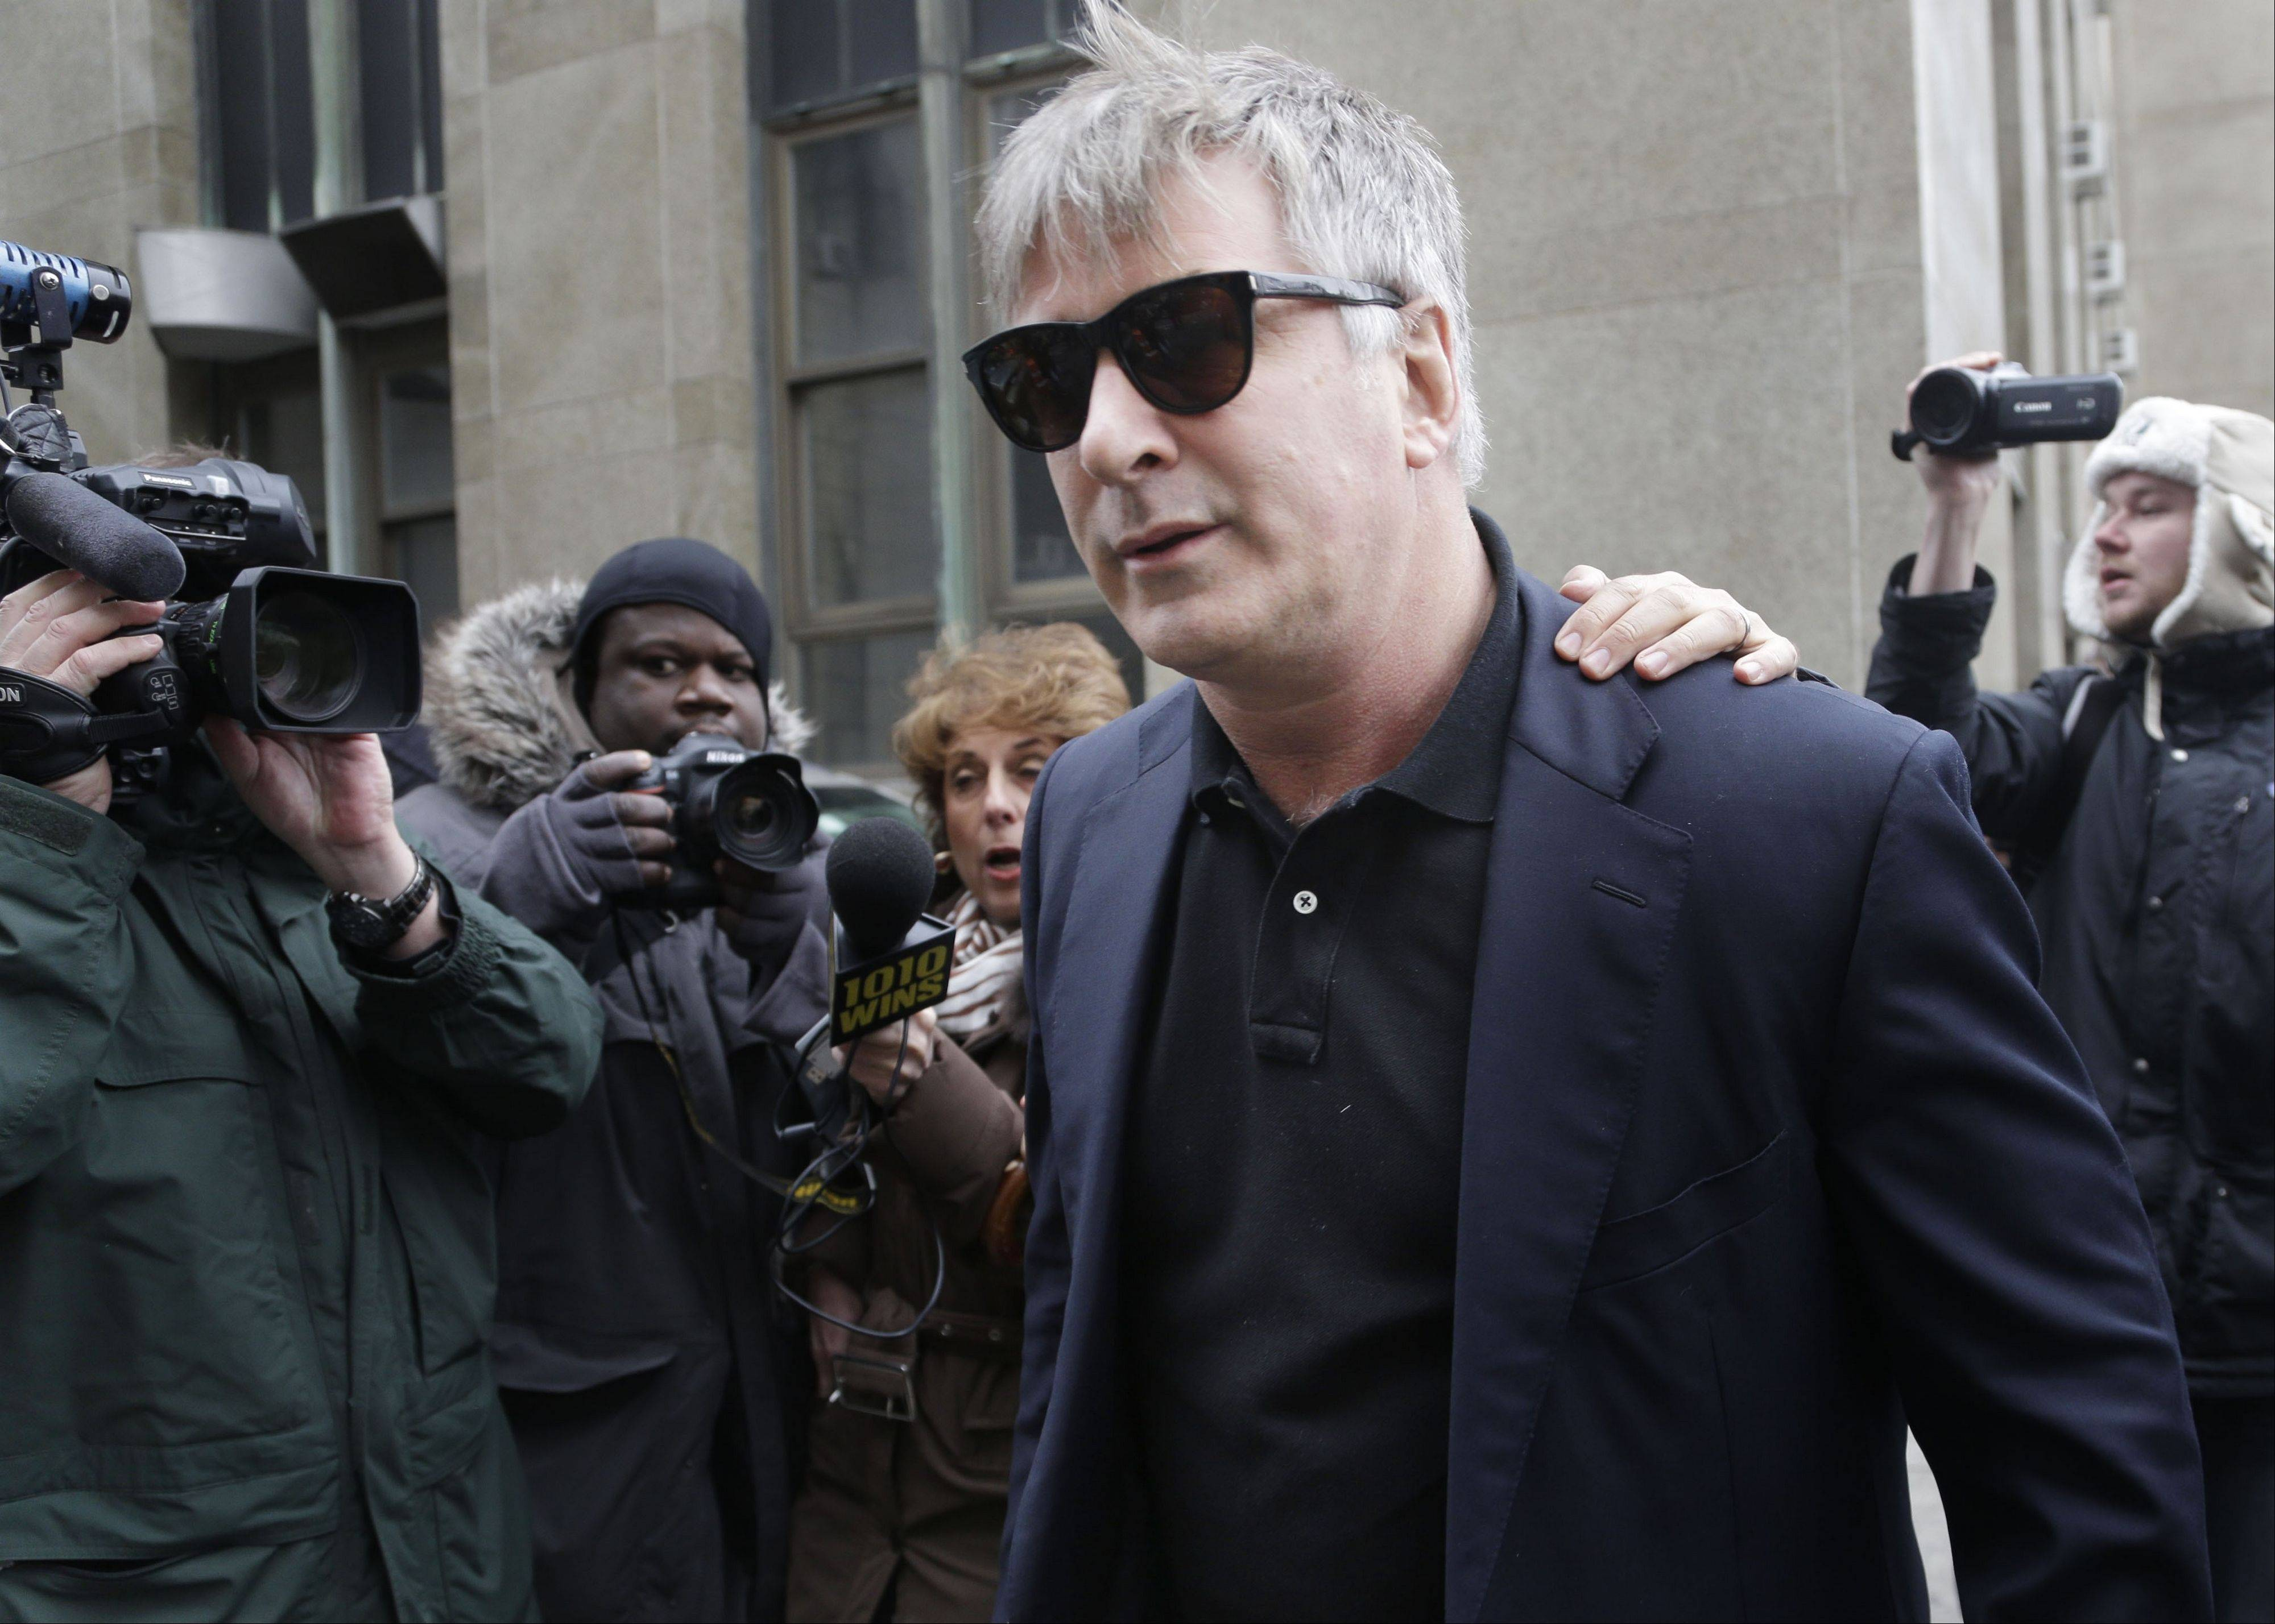 Alec Baldwin testified that after he met Canadian actress Genevieve Sabourin she began leaving dozens of voice mails for him a night and eventually started threatening to show up at his homes. Sabourin was sentenced Thursday to six months in jail by a judge who found her guilty of stalking Alec Baldwin in New York.